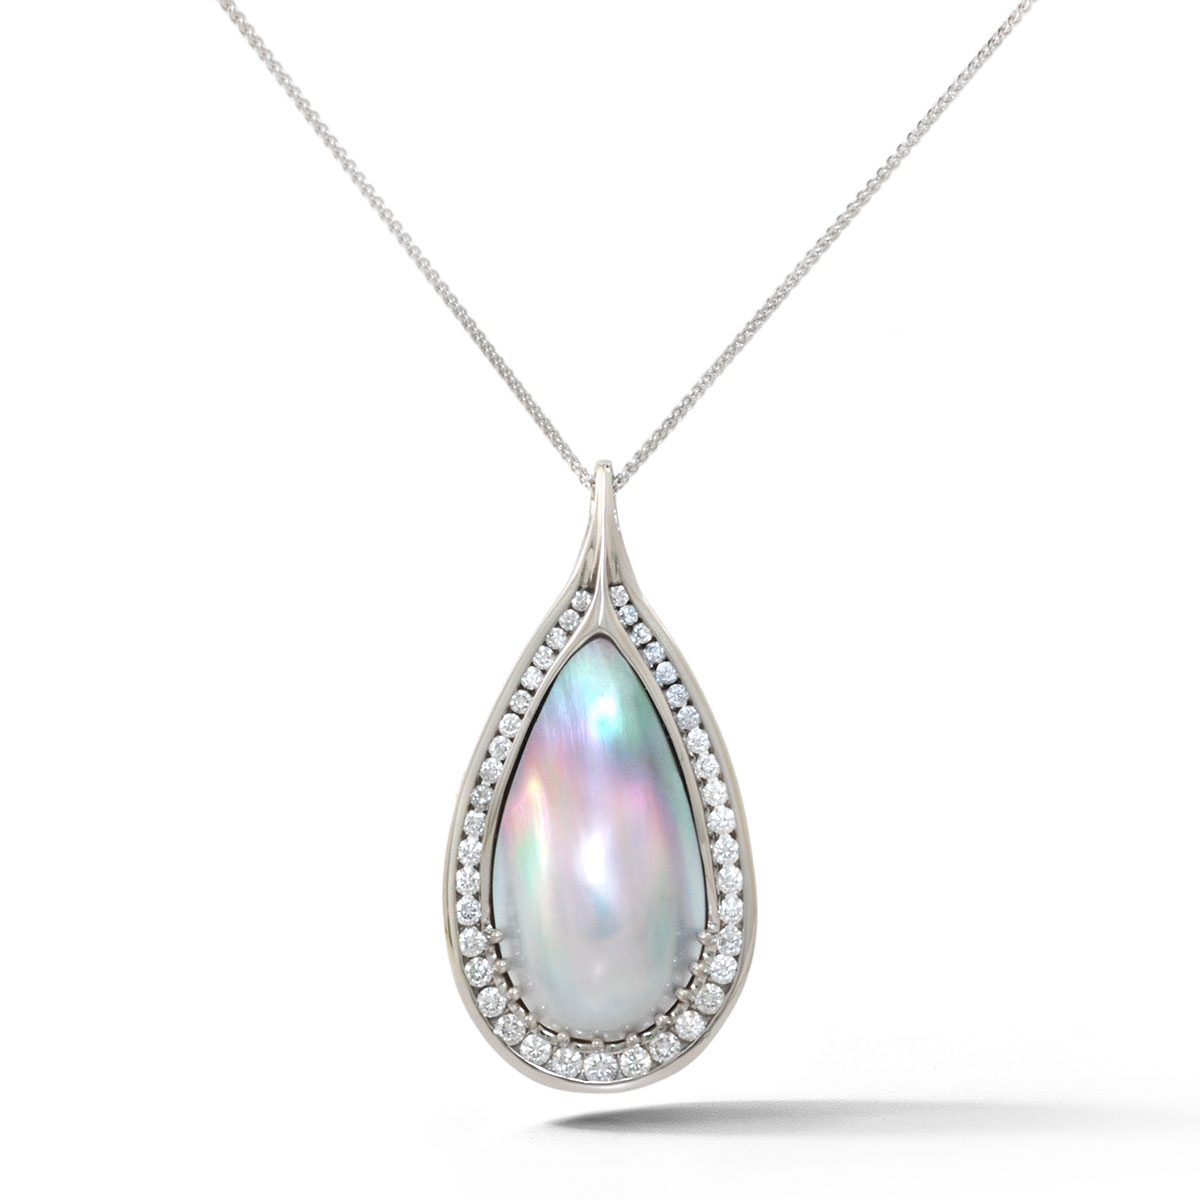 IND0993 Teardrop Pearl and Diamond Pendant